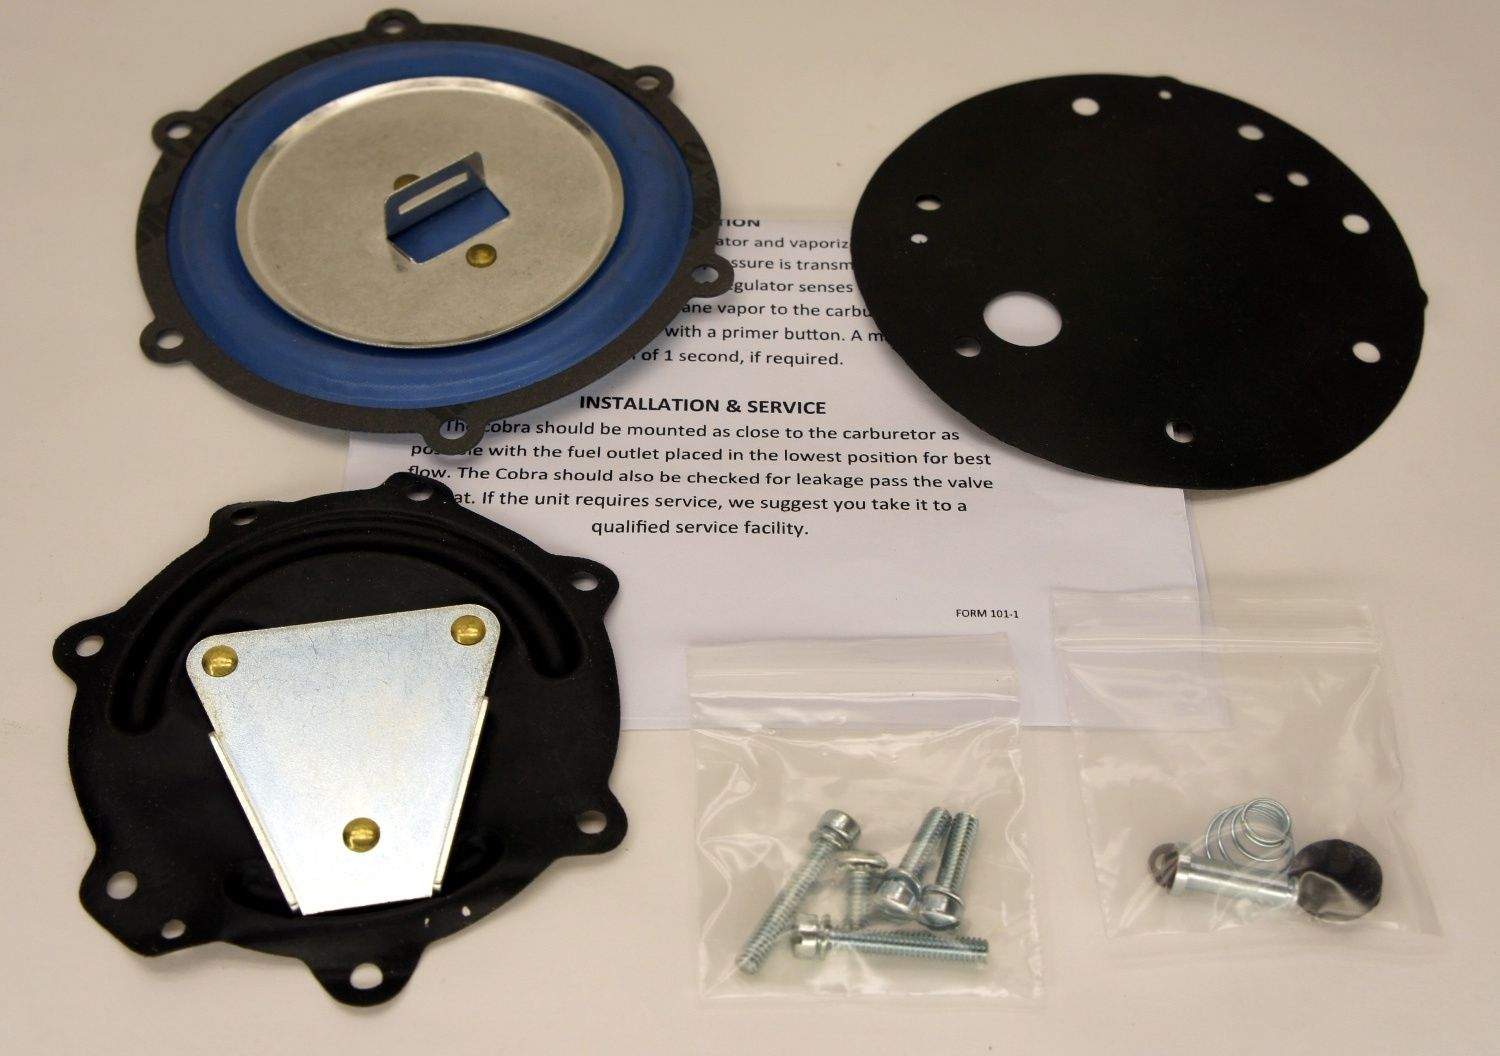 IMPCO RK-COBRA Repair Kit, LPG Regulator COBRA